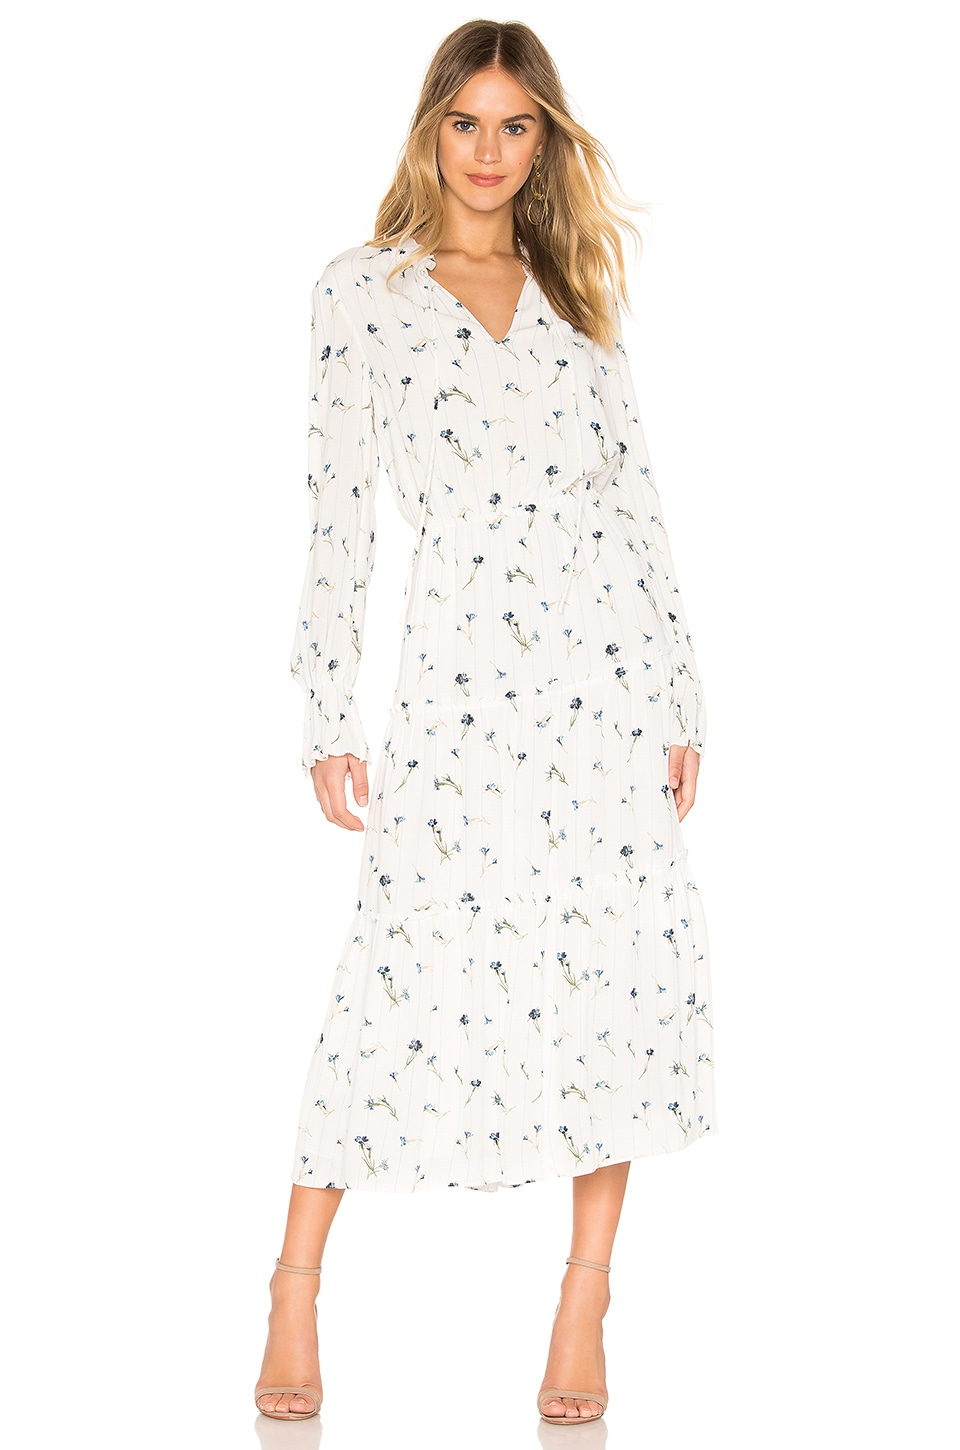 Joie Waneta Dress in Porcelain